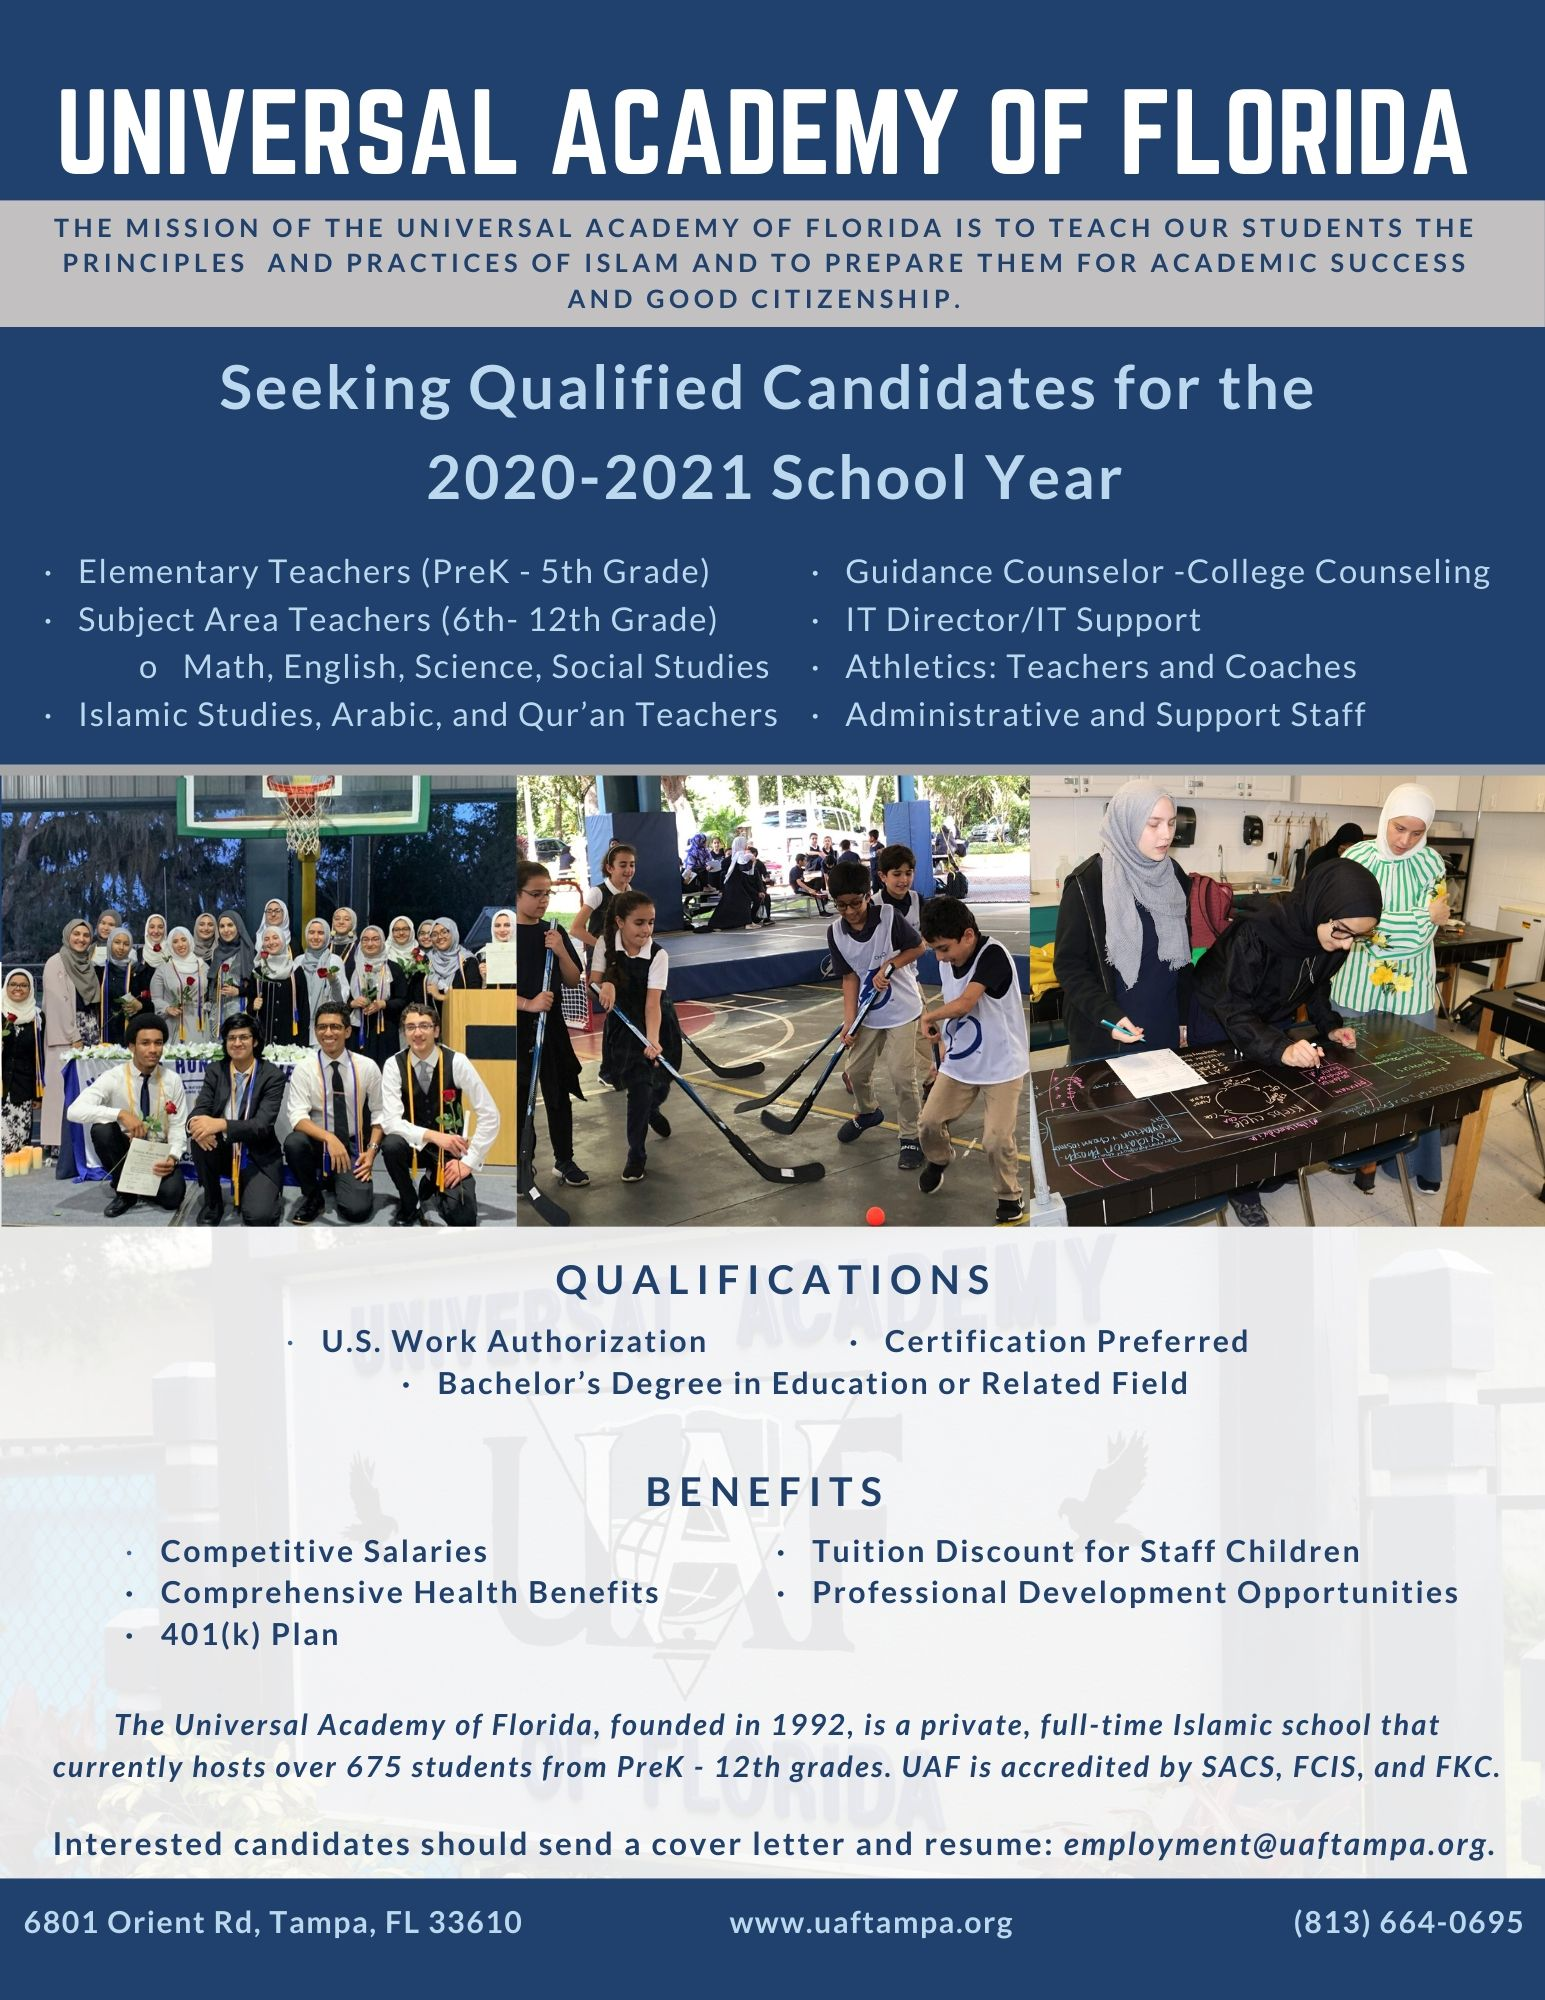 Seeking Qualified Candidates for 2020-21 School Year